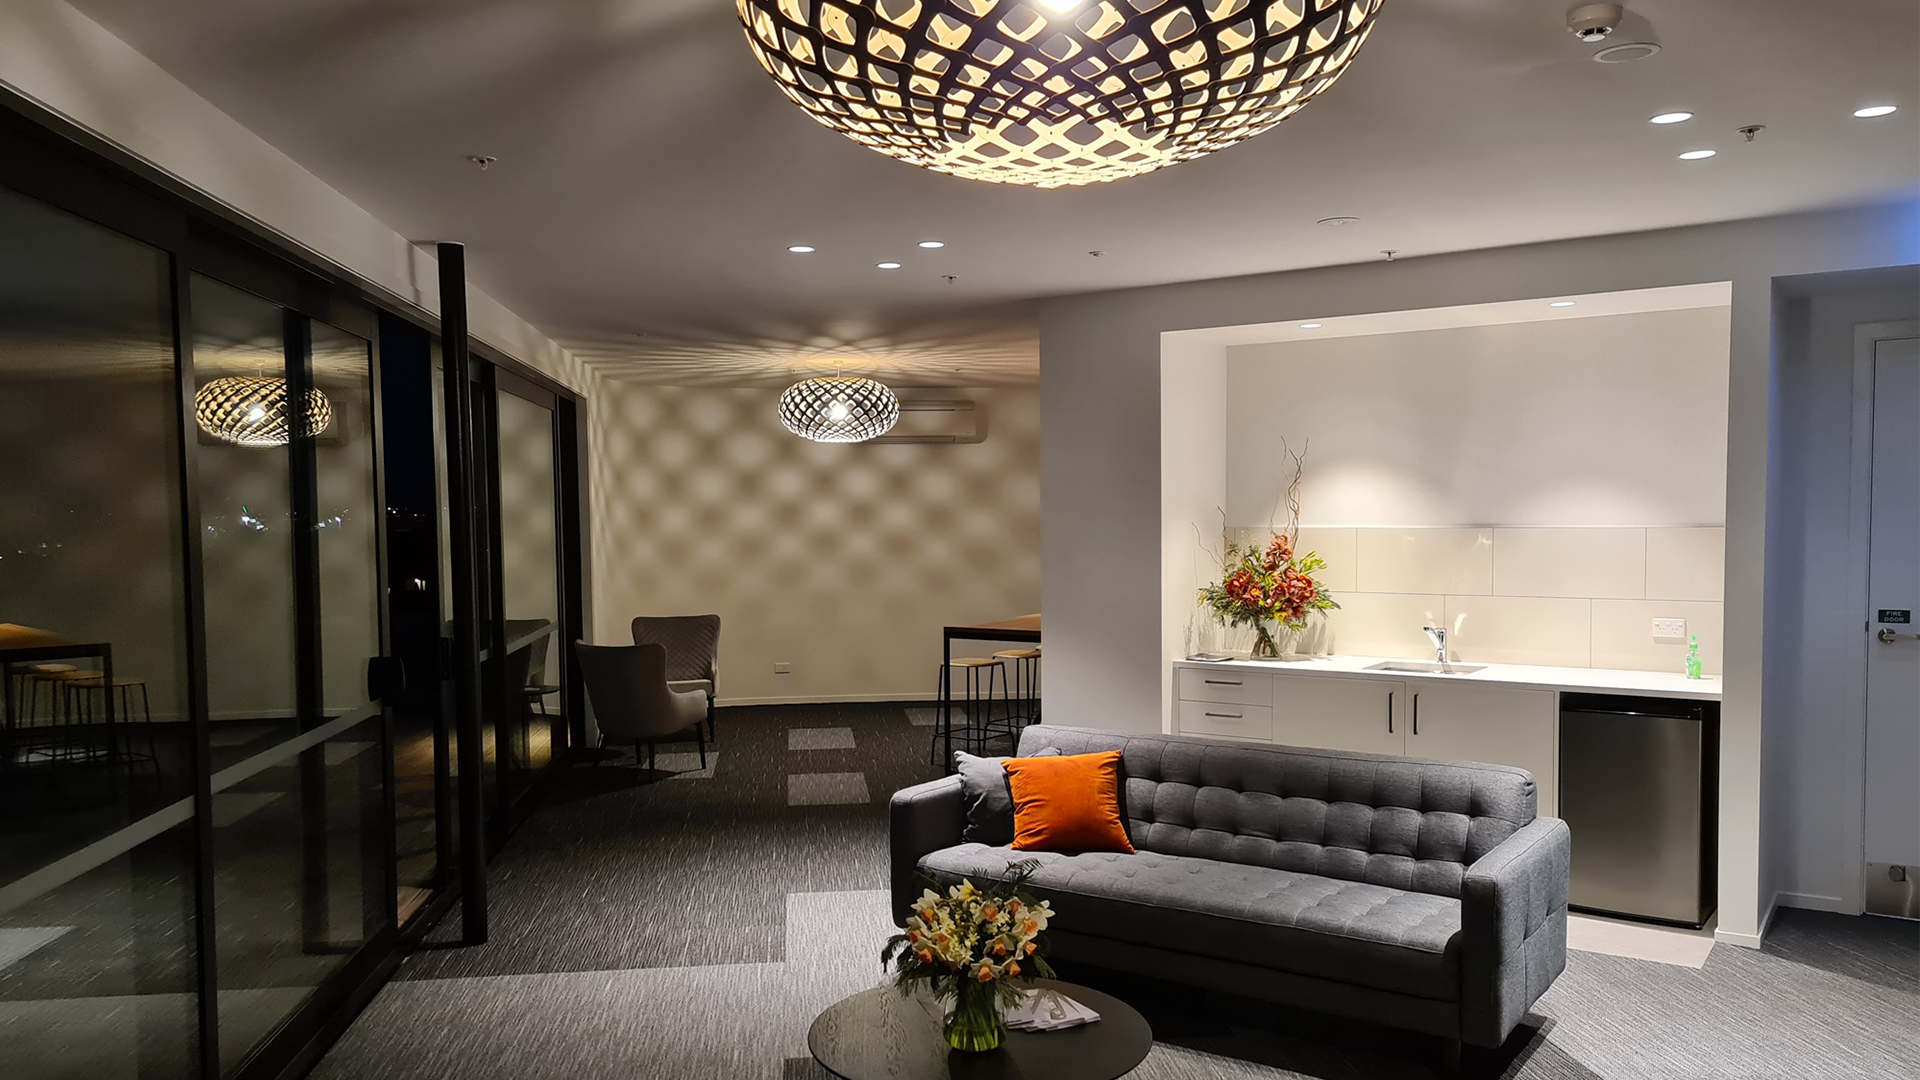 Aotea Electric Auckland, lighting up the new Modal Apartments in Mt Albert, Auckland